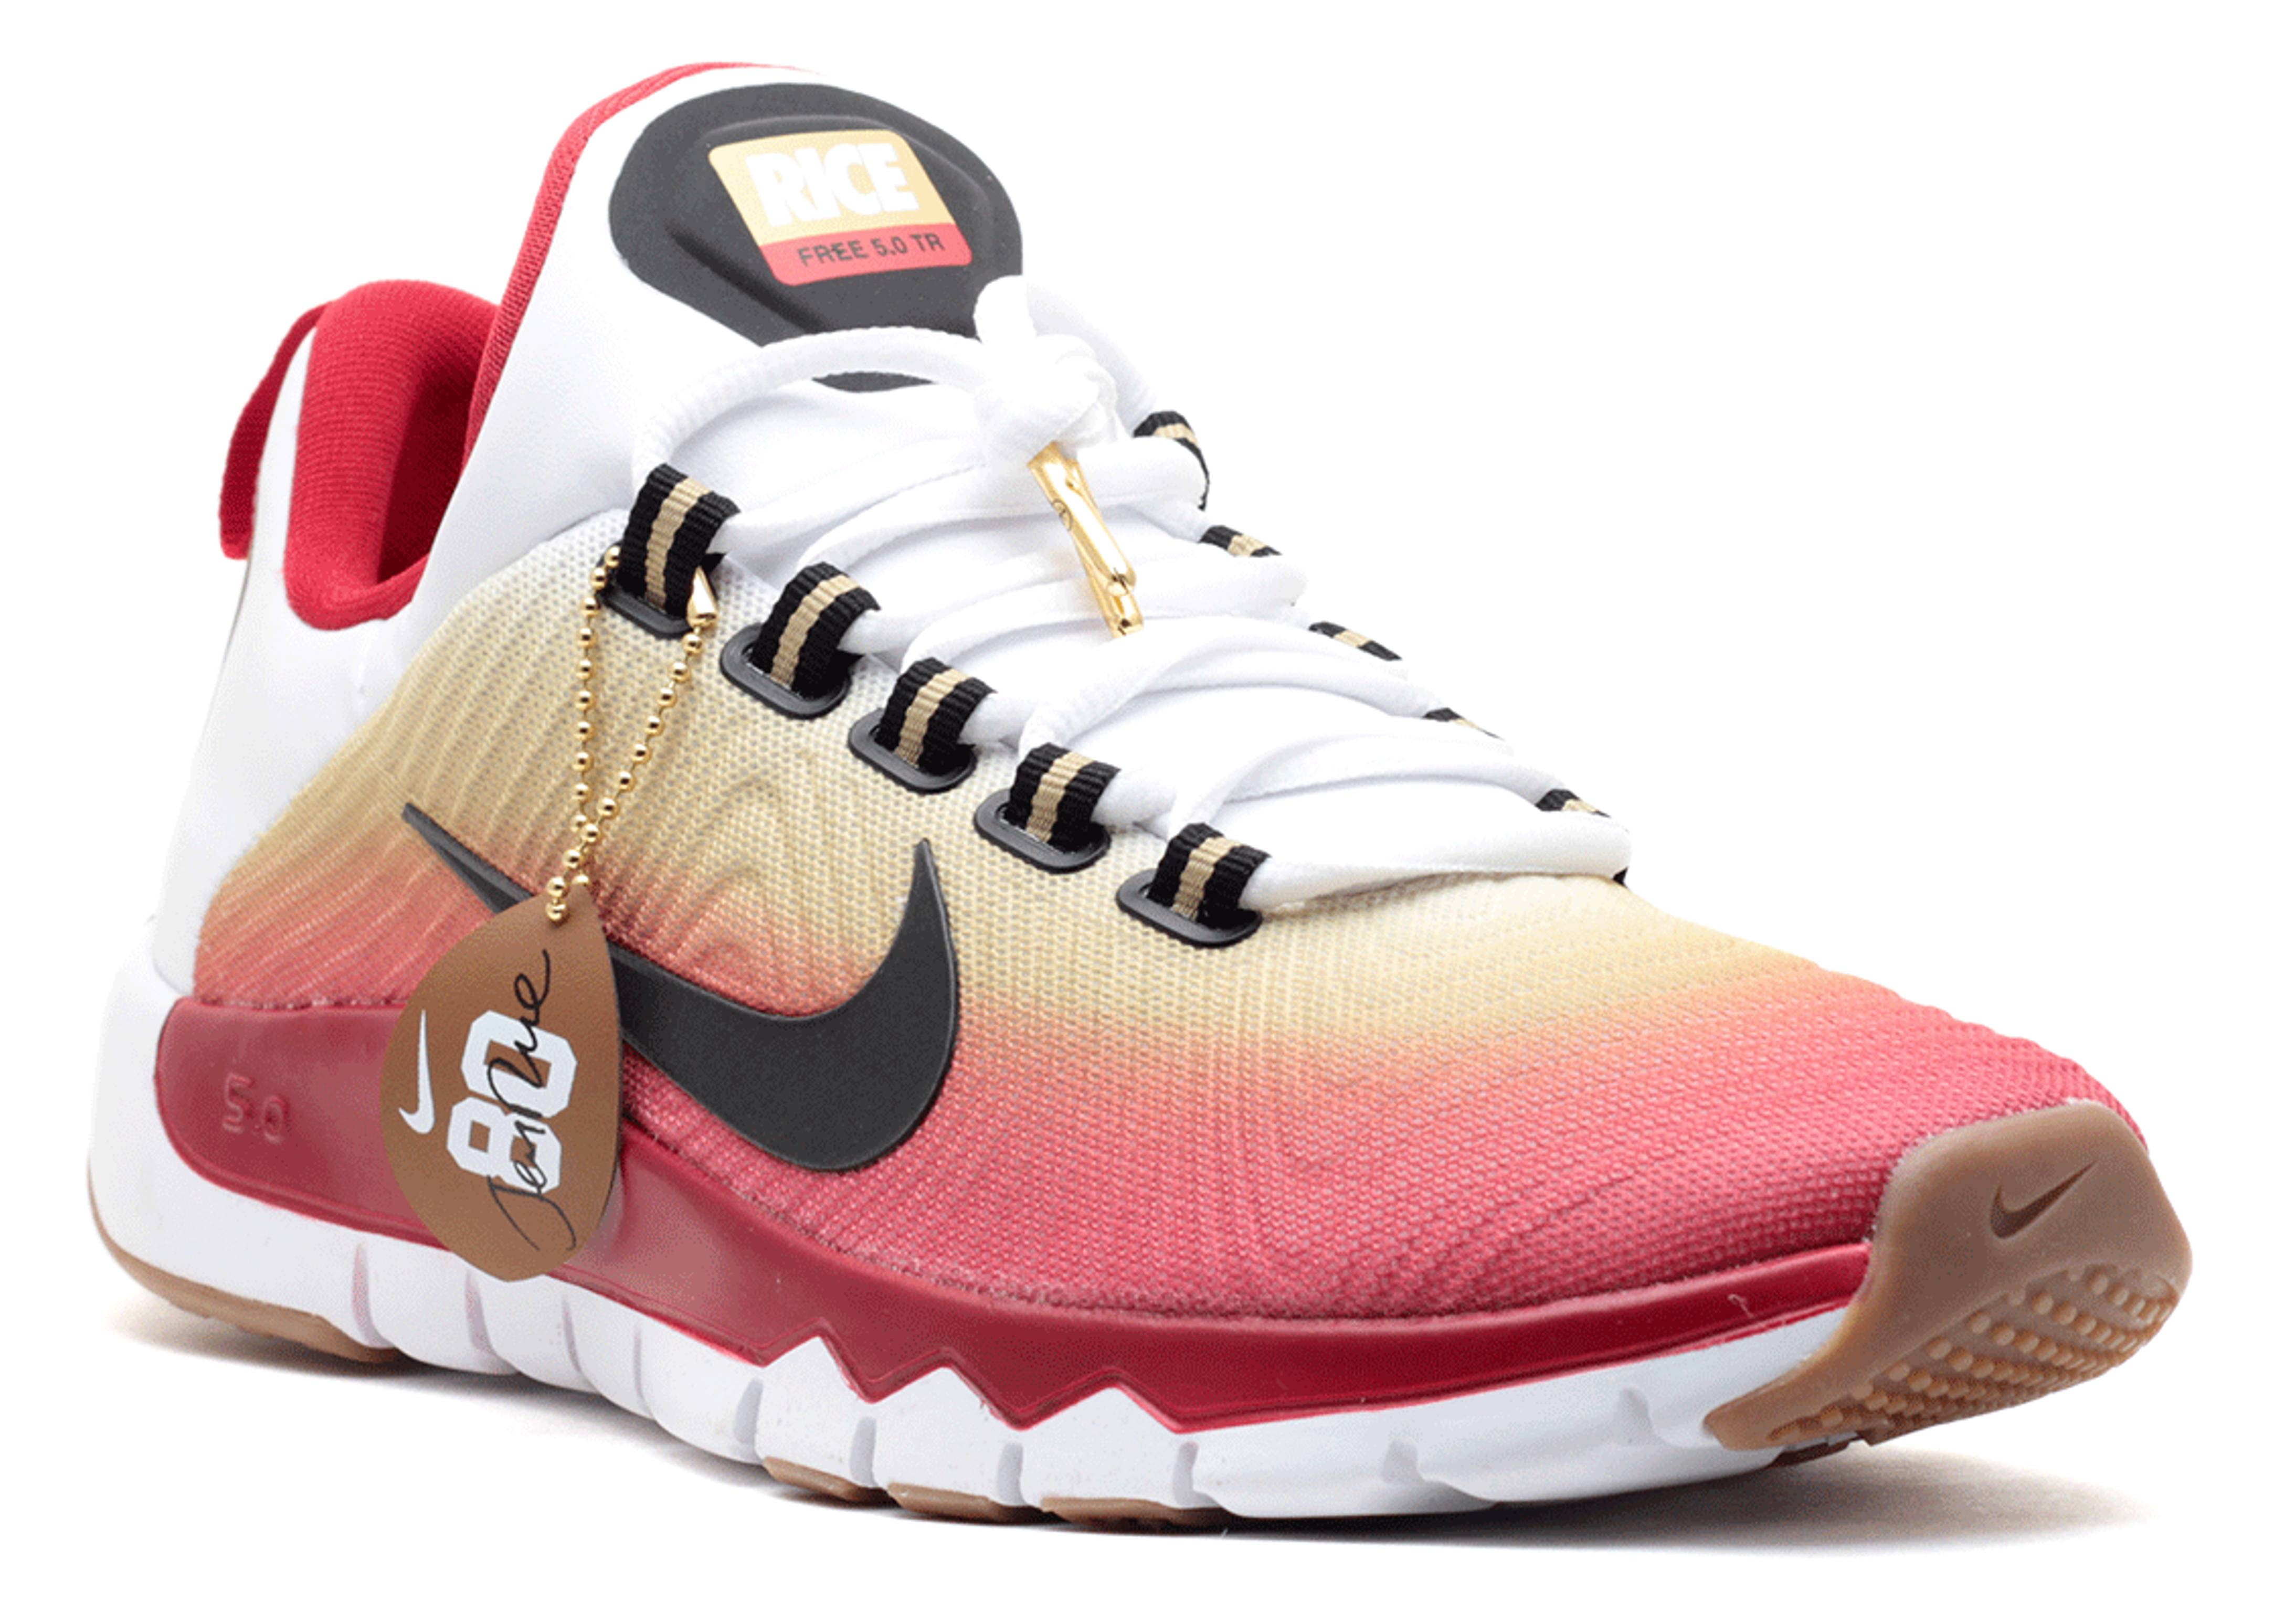 dfe8be28402d4 ... nike. free trainer 5.0 nrg nike free trainer 5.0 jerry rice .